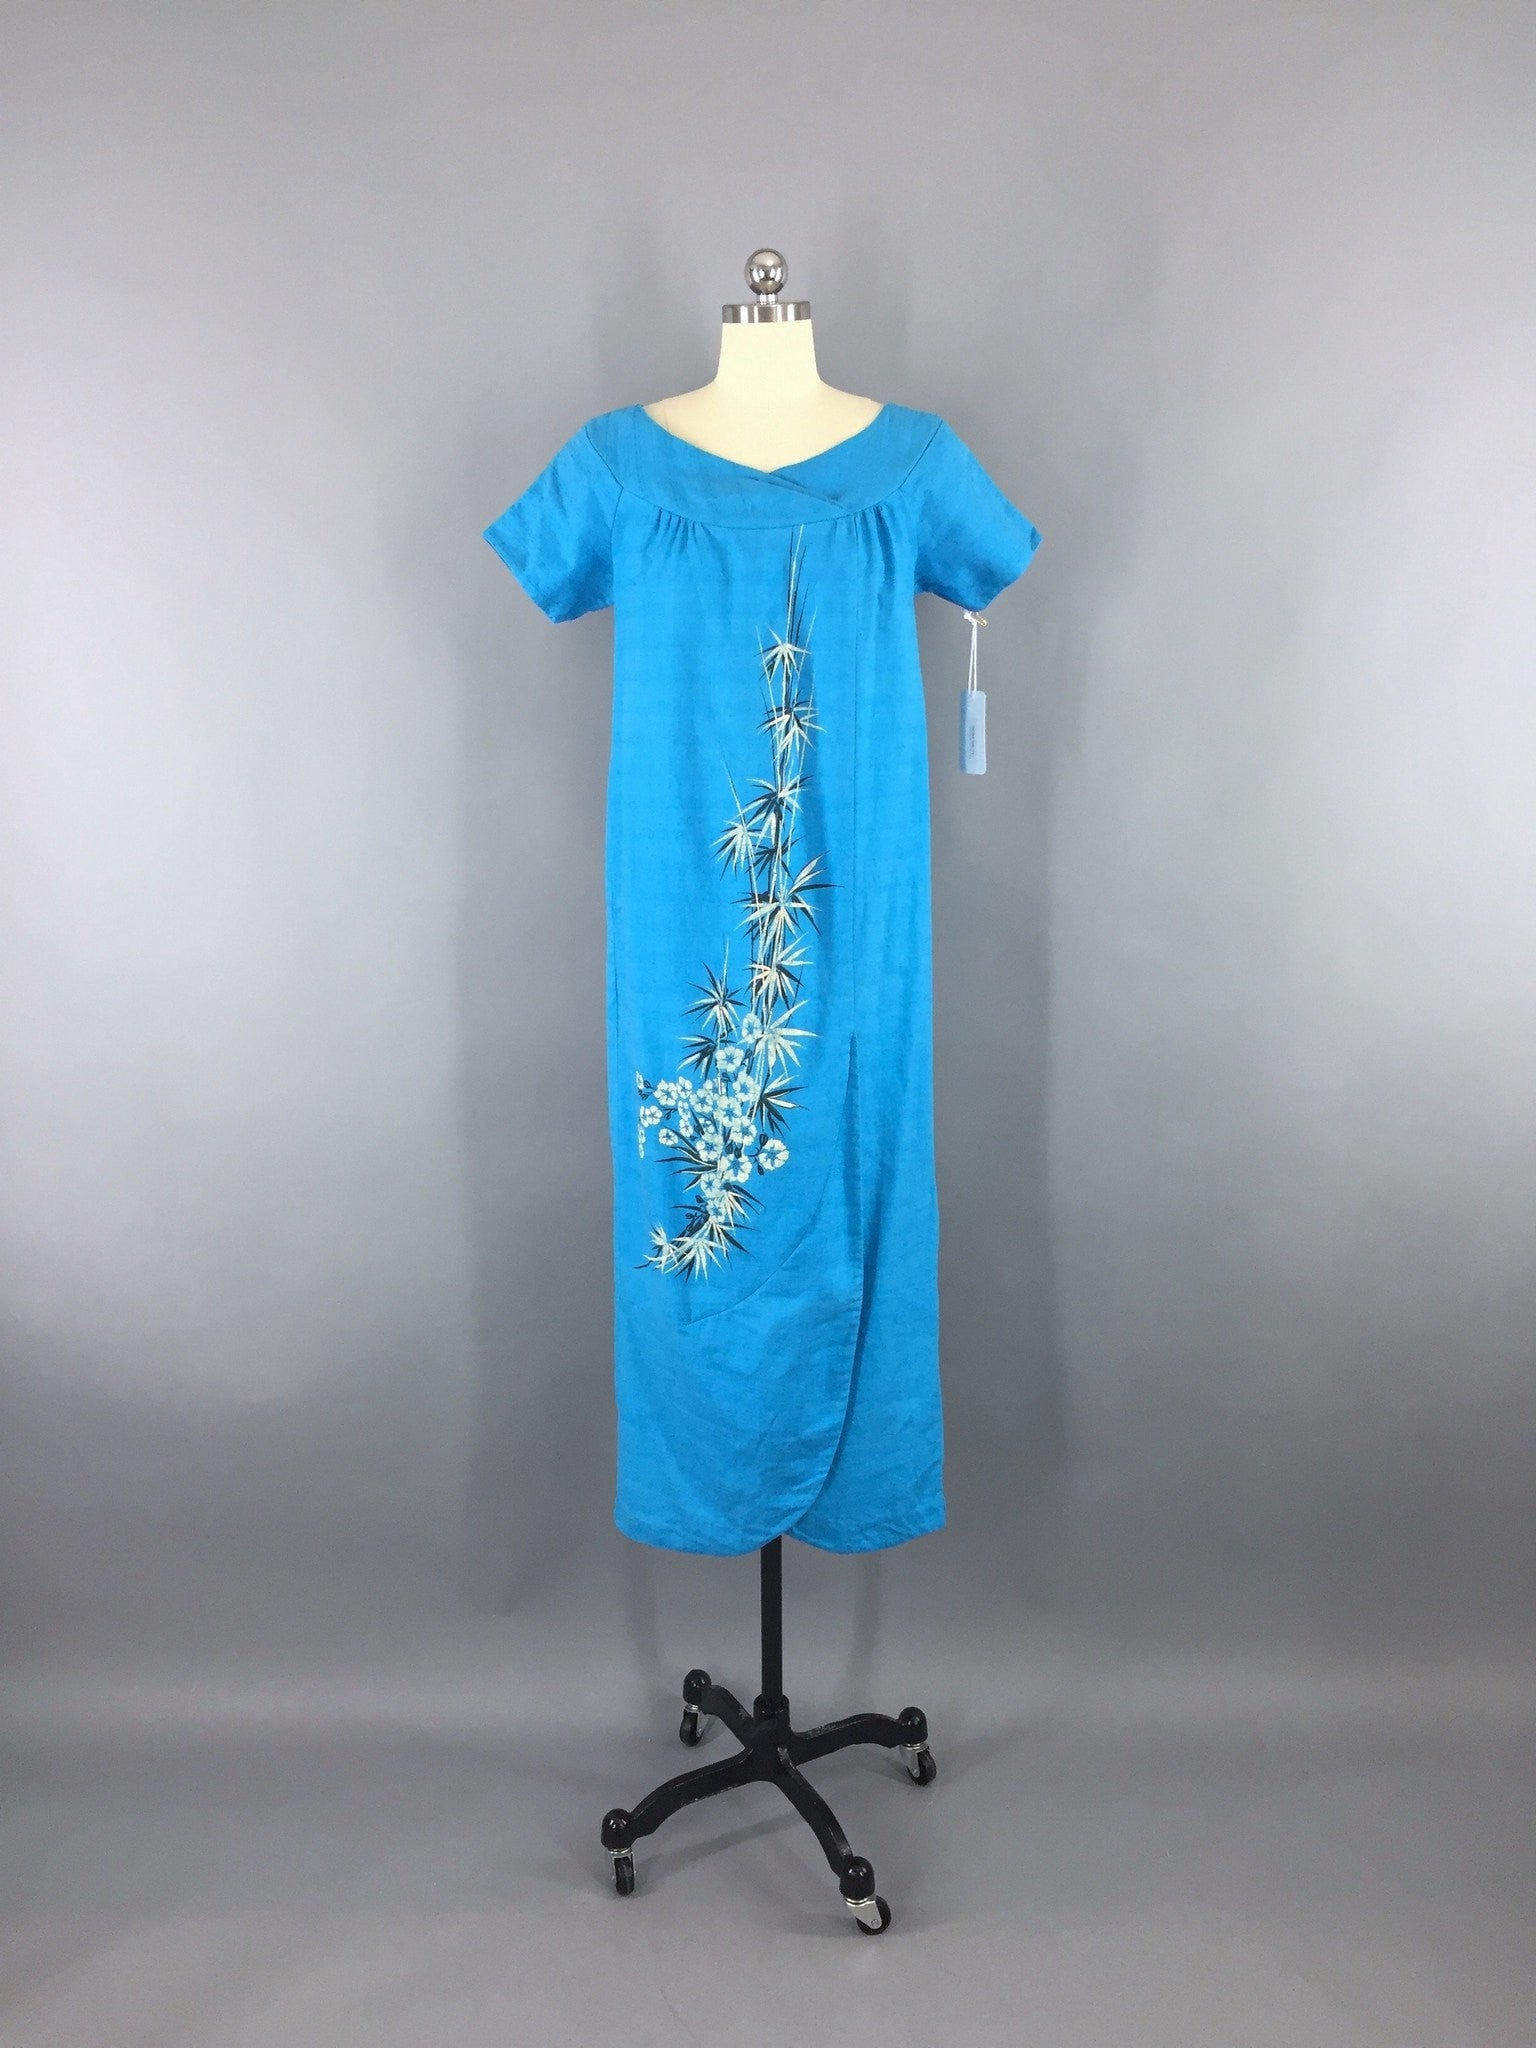 Vintage 1950s Blue Cotton Floral Hawaiian Maxi Dress Dress ThisBlueBird